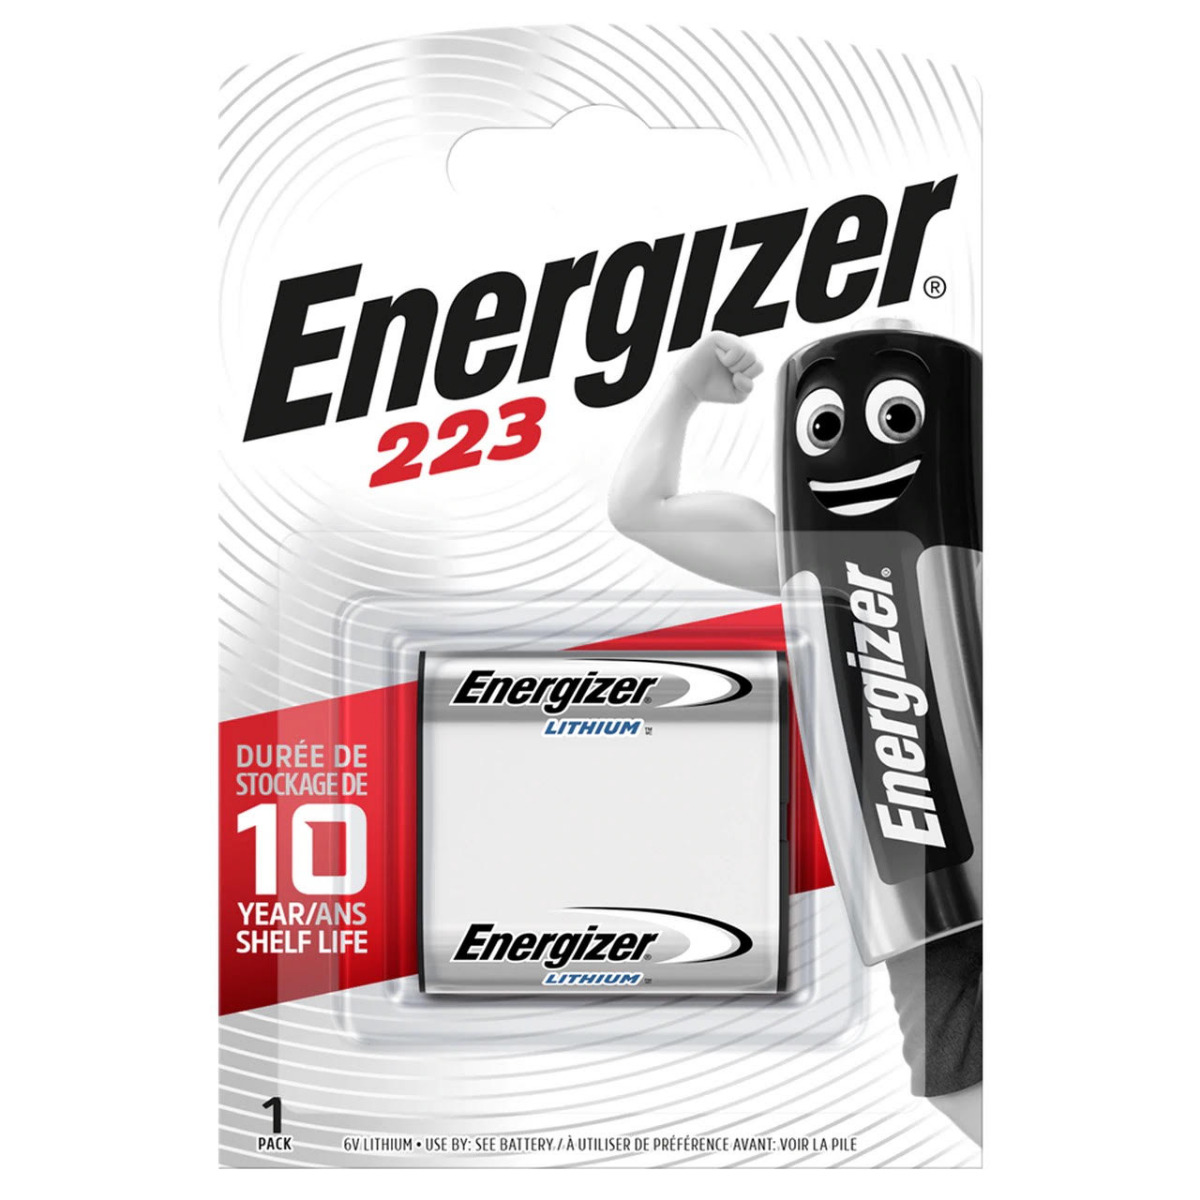 Energizer 223 CRP2P Lithium Battery | 1 pack